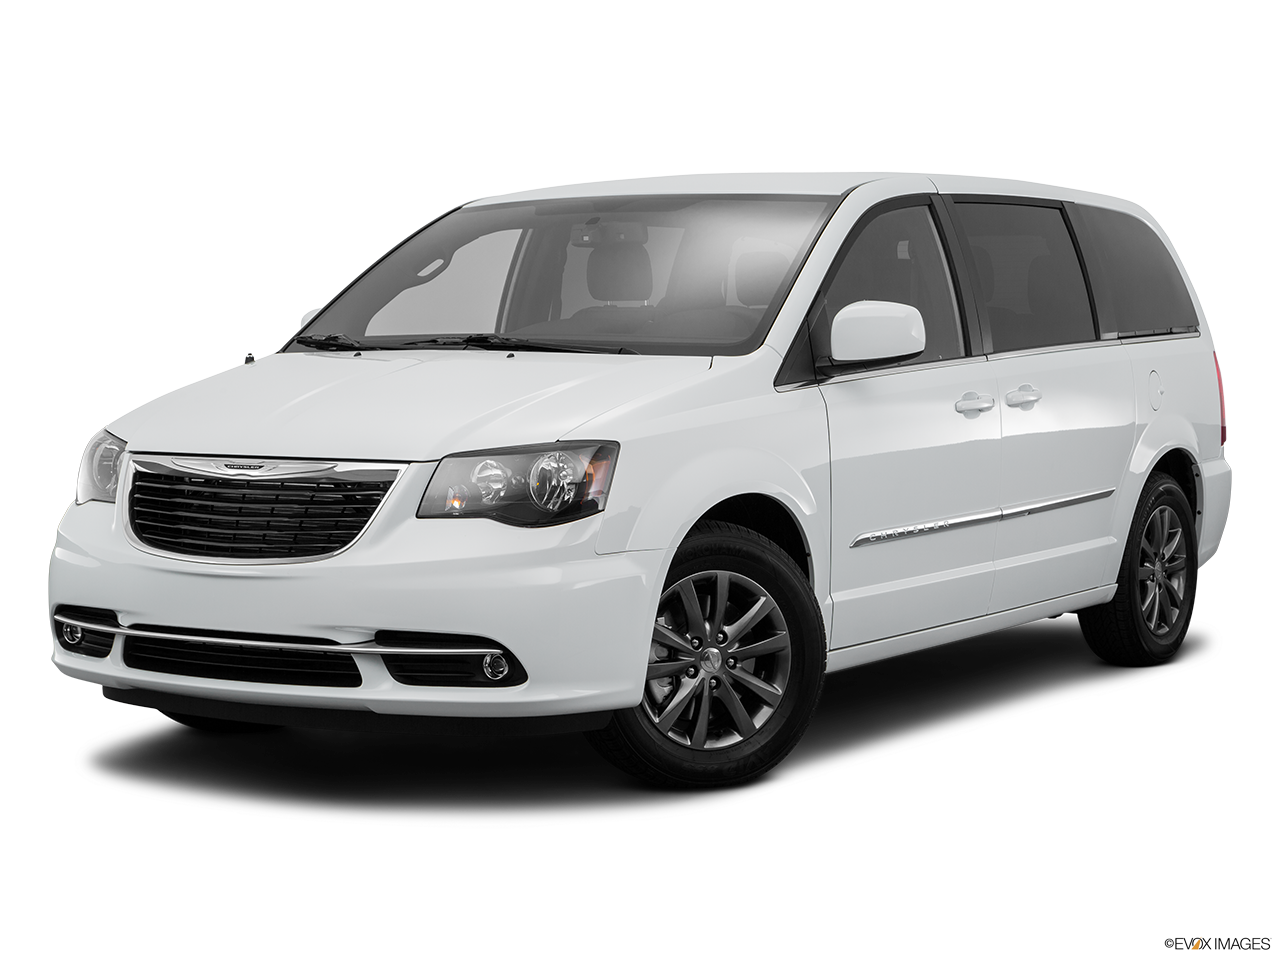 Test Drive A 2016 Chrysler Town & Country at Nashville Chrysler Dodge Jeep RAM in Antioch